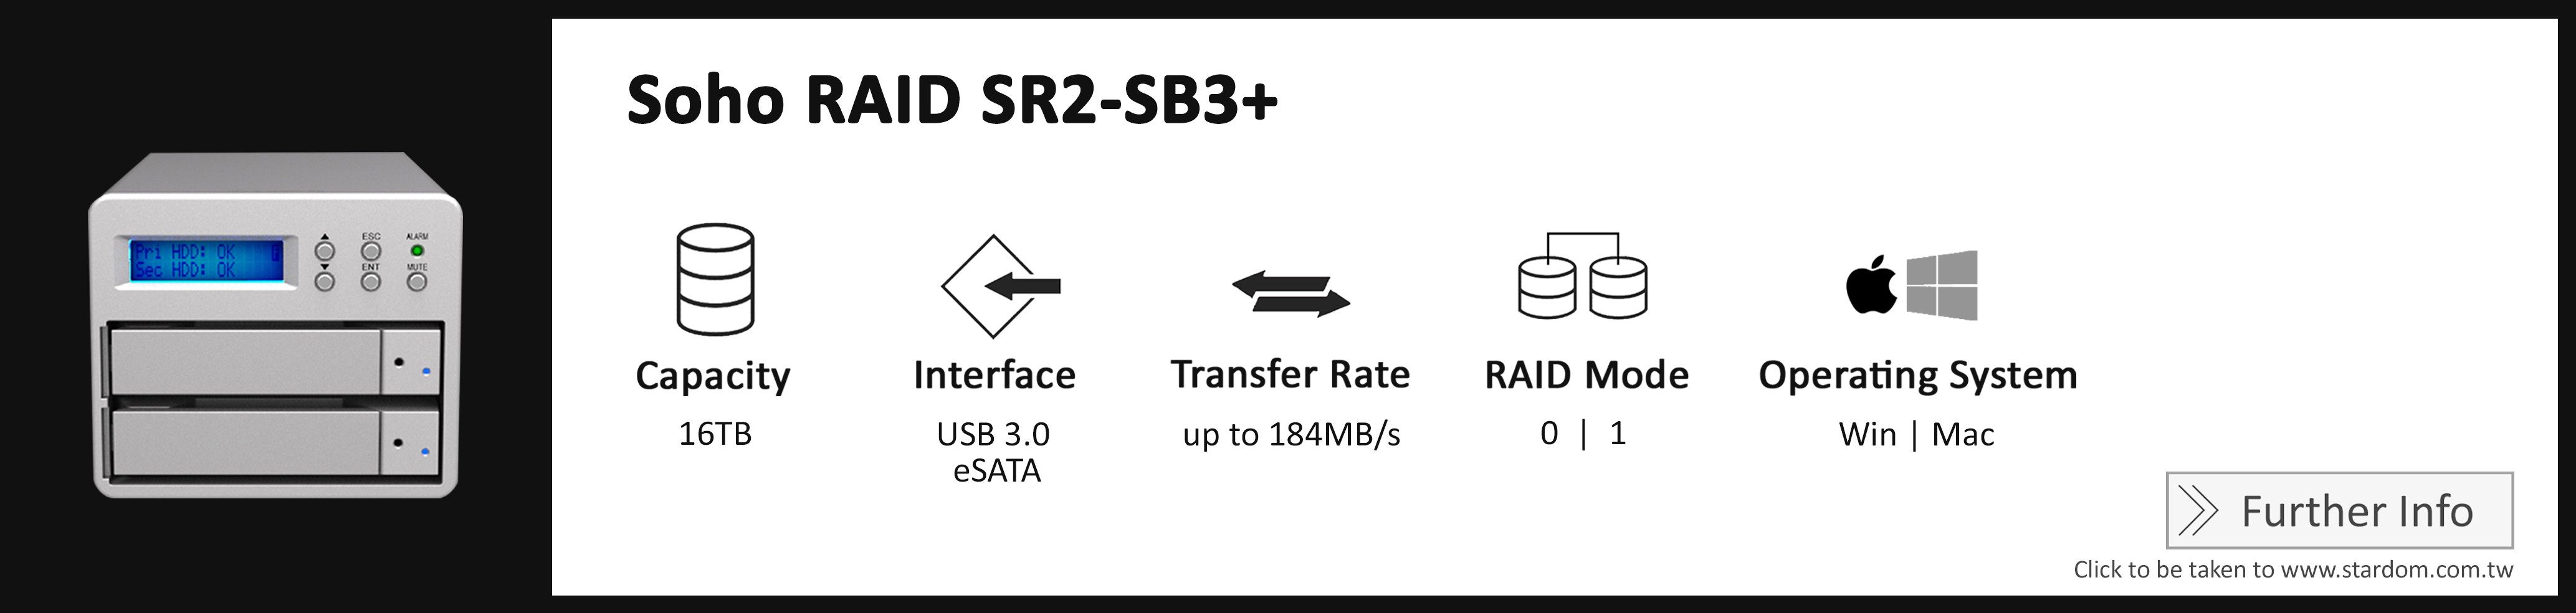 Stardom_SR2-SB3+_Cost Effective RAID Storage